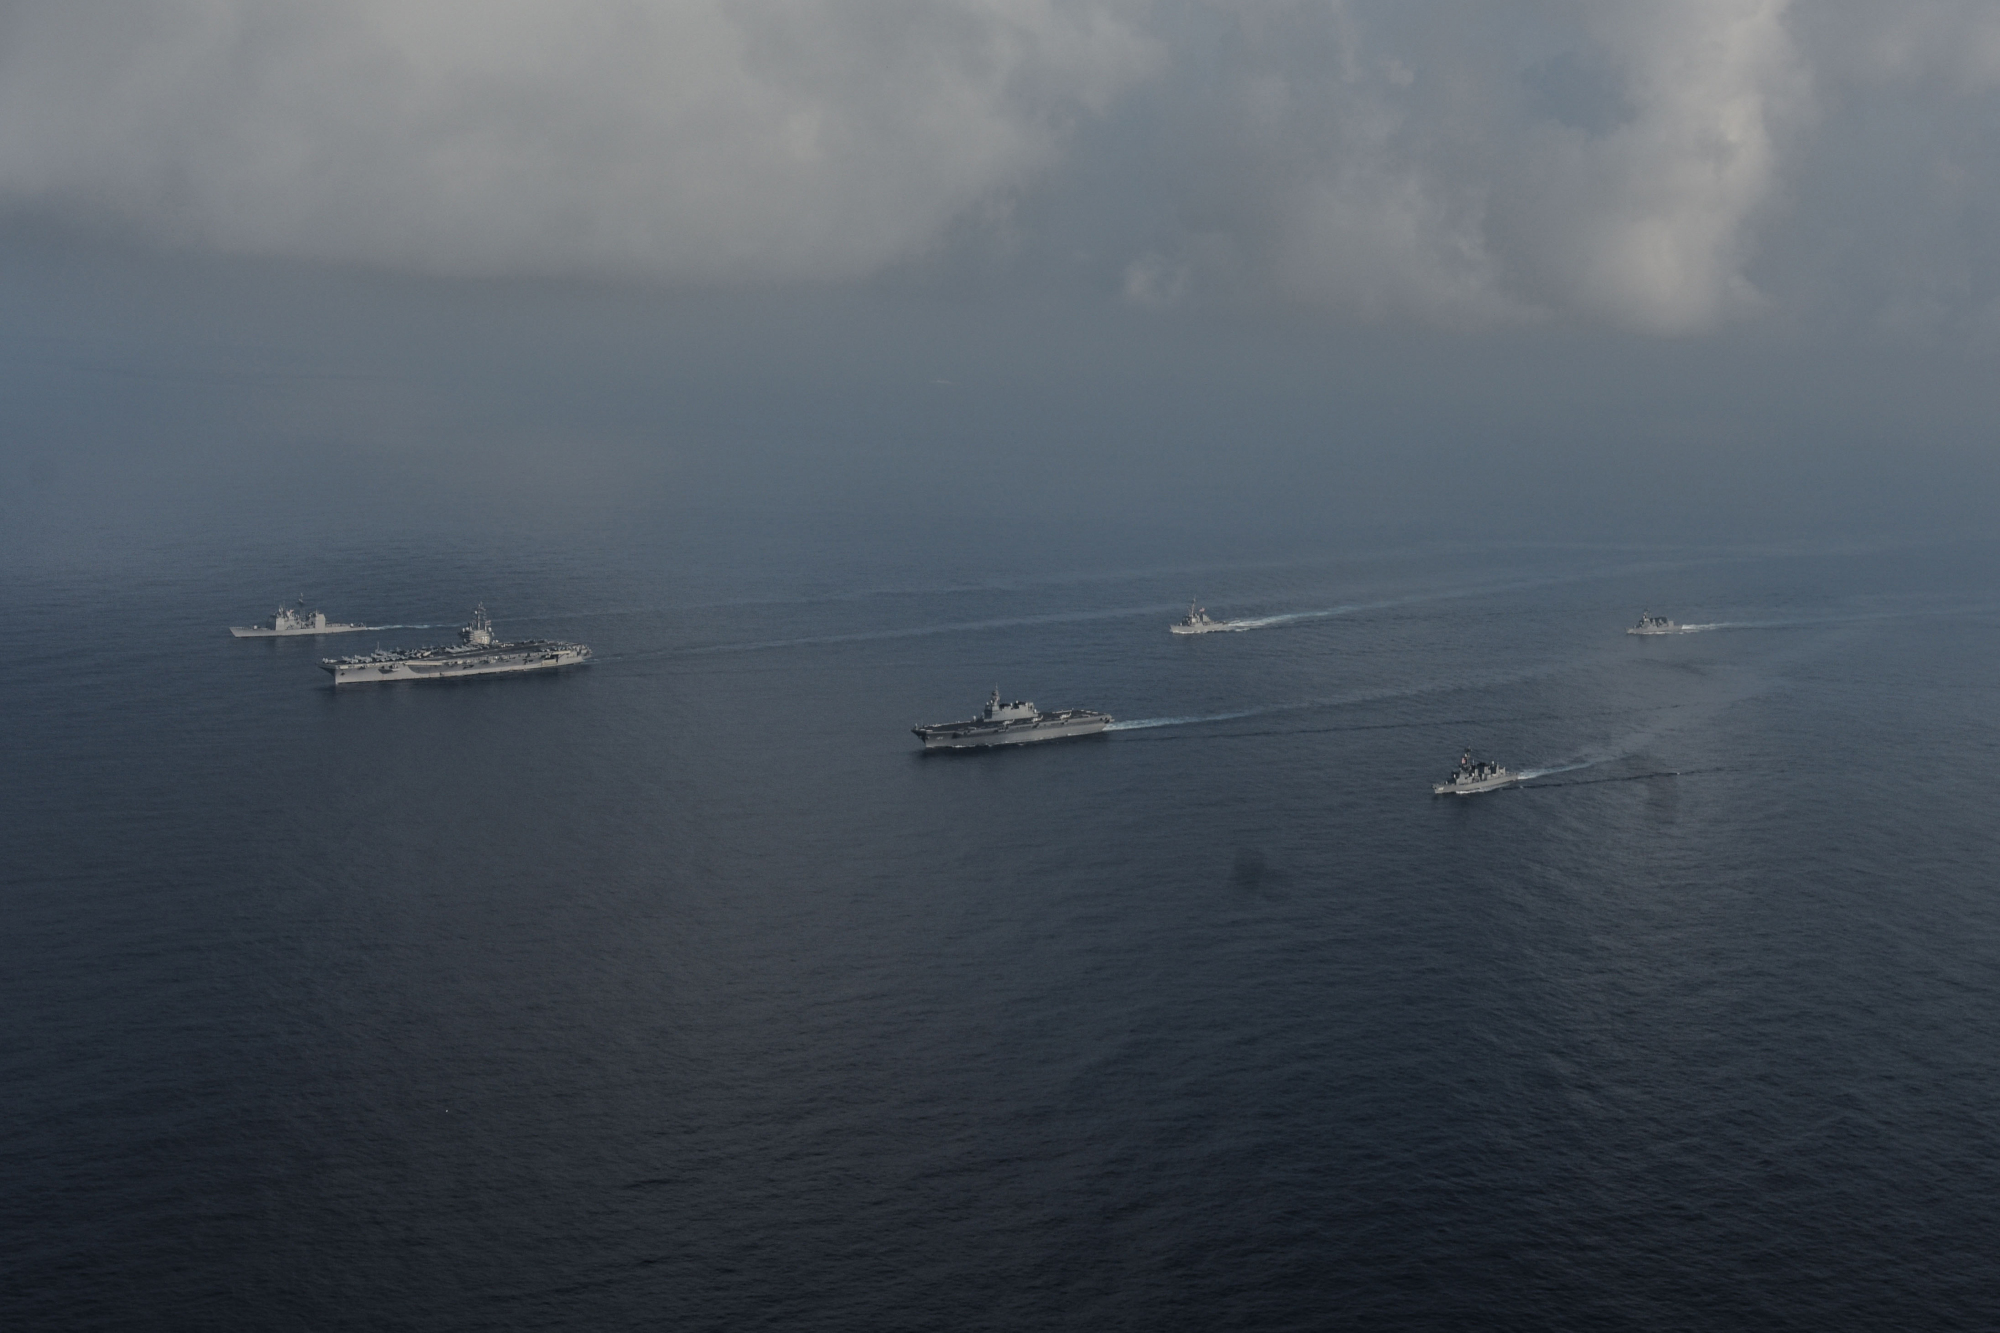 The Maritime Self-Defense Force helicopter carrier Kaga and destroyers Inazuma and Suzutsuki sail with the USS Ronald Reagan aircraft carrier and two other U.S. warships in the South China Sea on Aug. 31. | U.S. NAVY